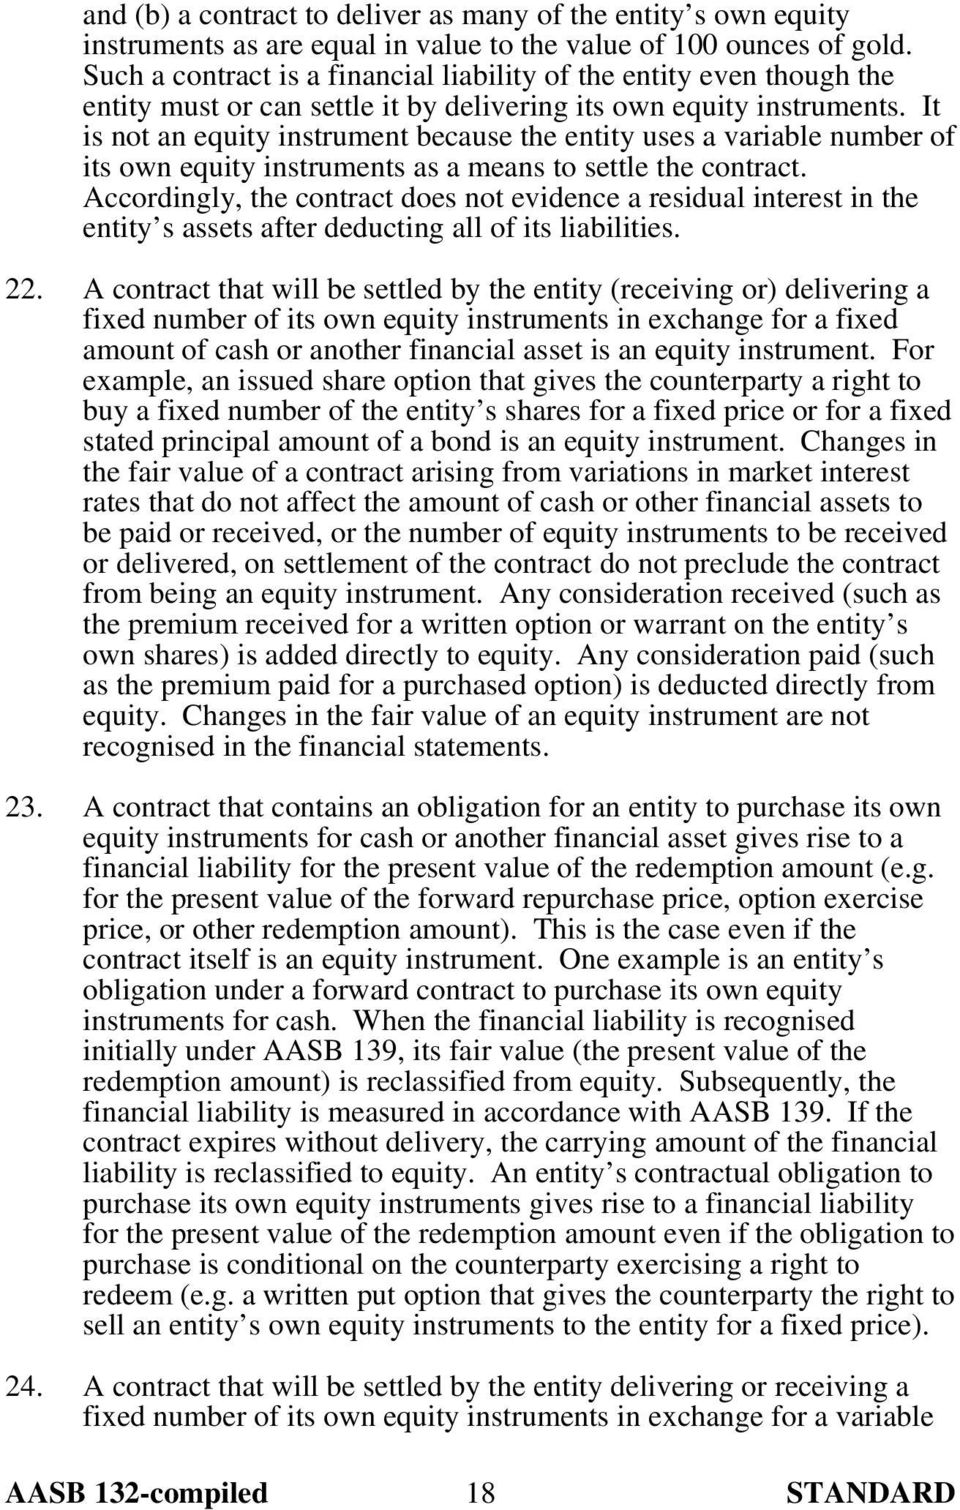 It is not an equity instrument because the entity uses a variable number of its own equity instruments as a means to settle the contract.